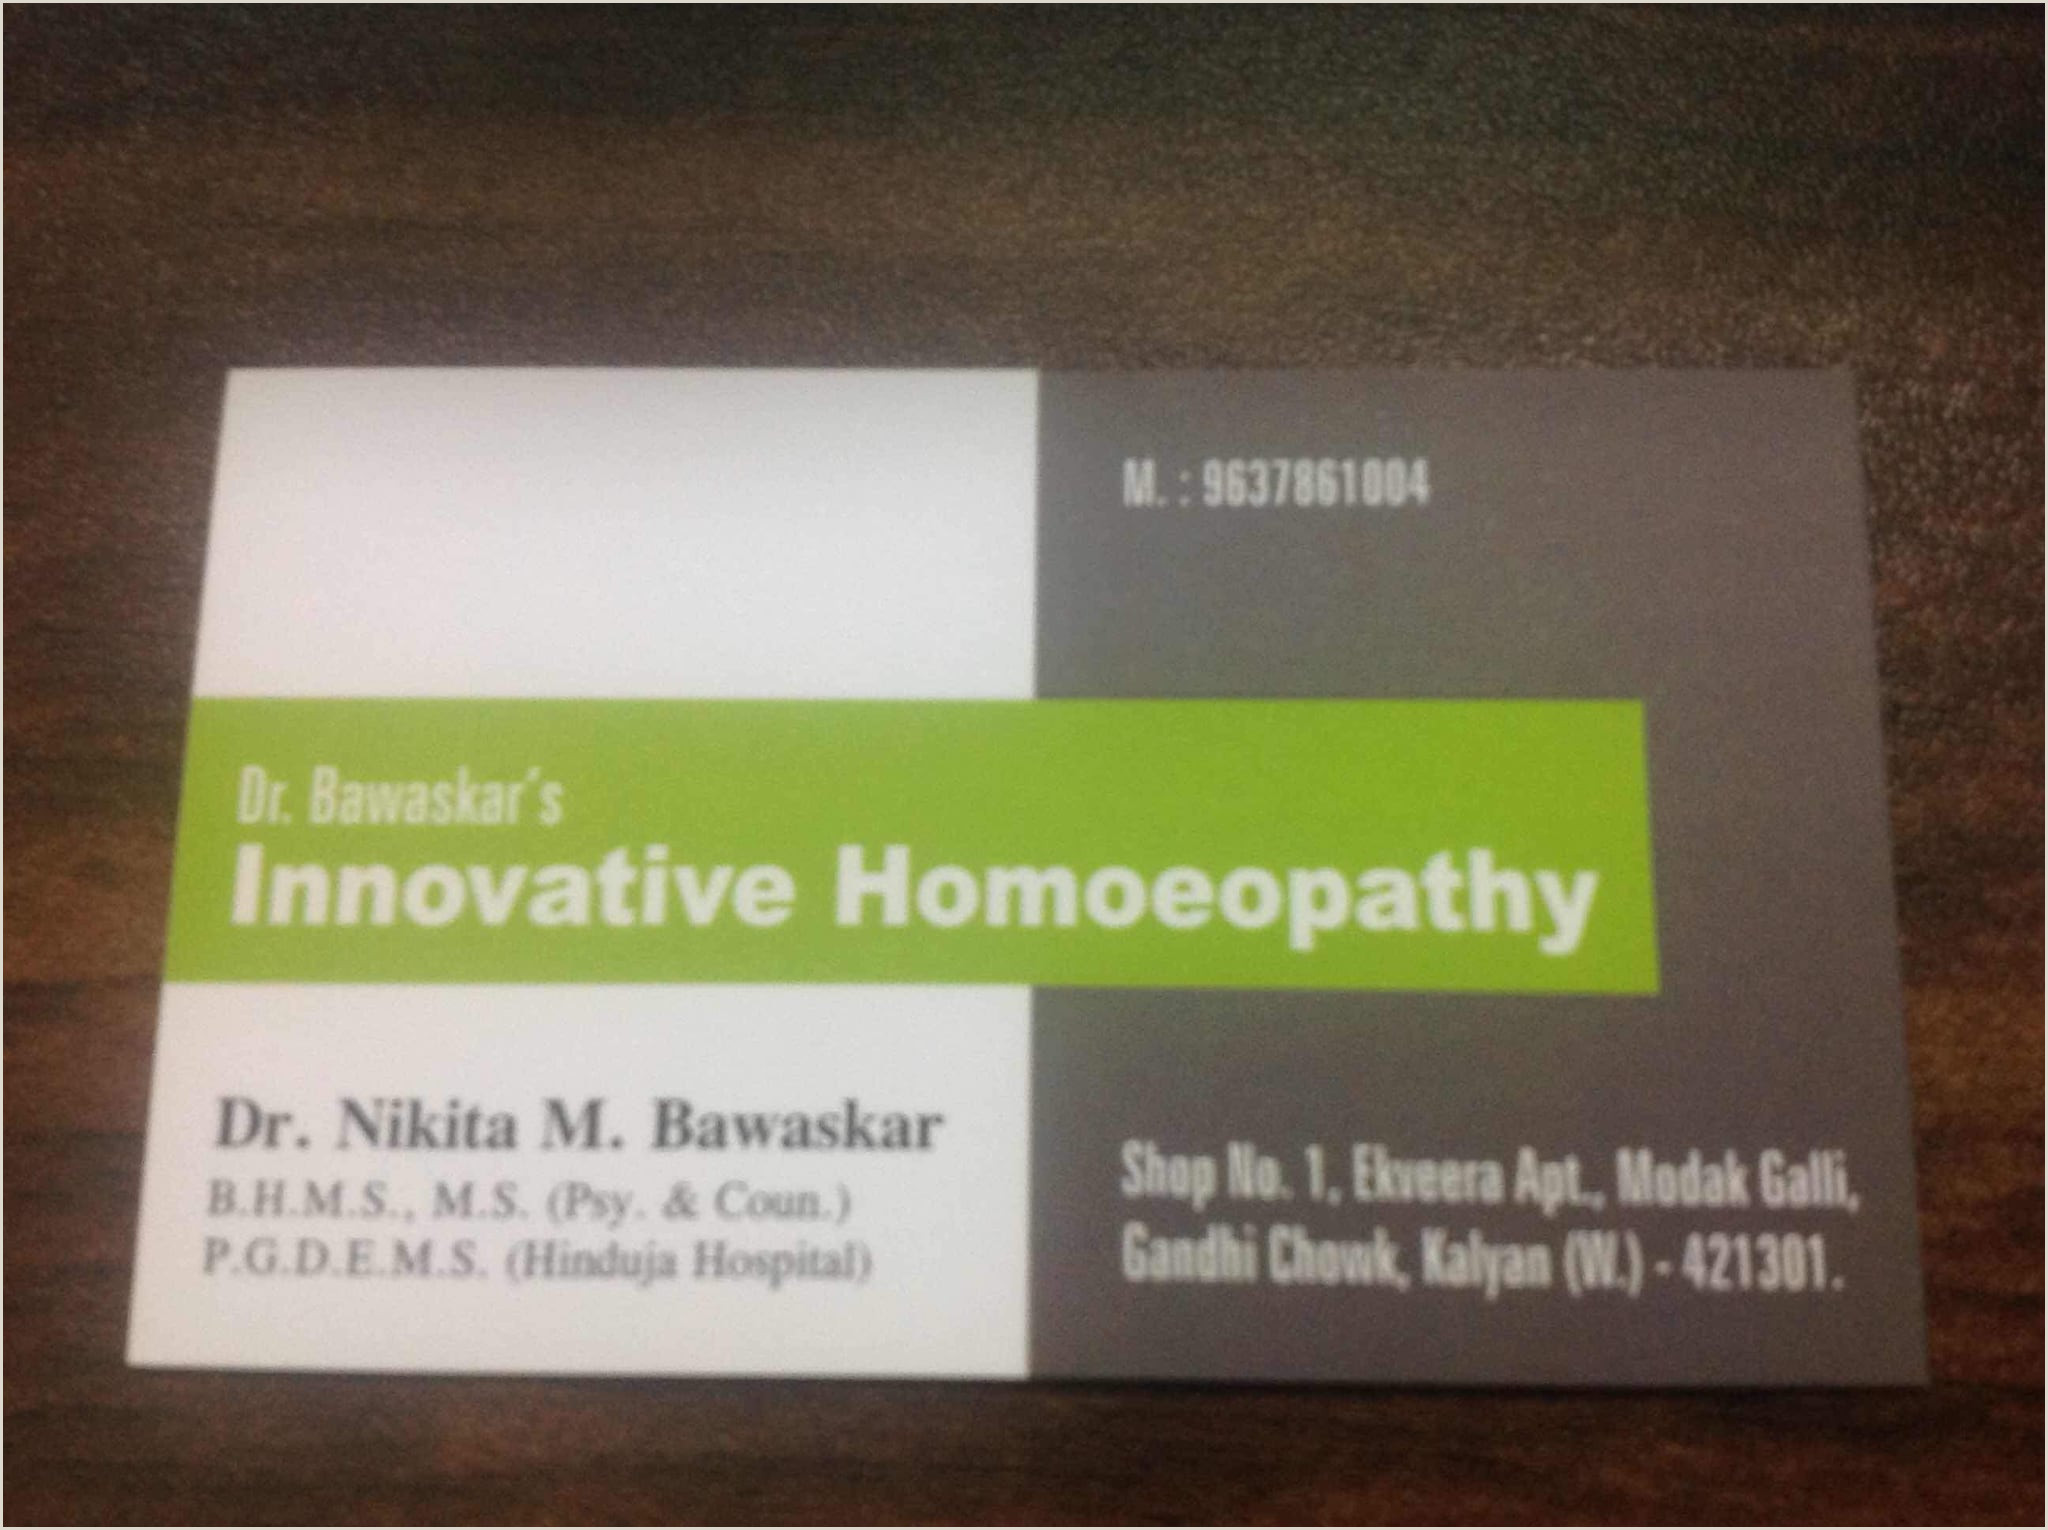 Unique Homepathic Personal Business Cards Card Design Homeopathic Homeopathy Doctor Visiting Card Design